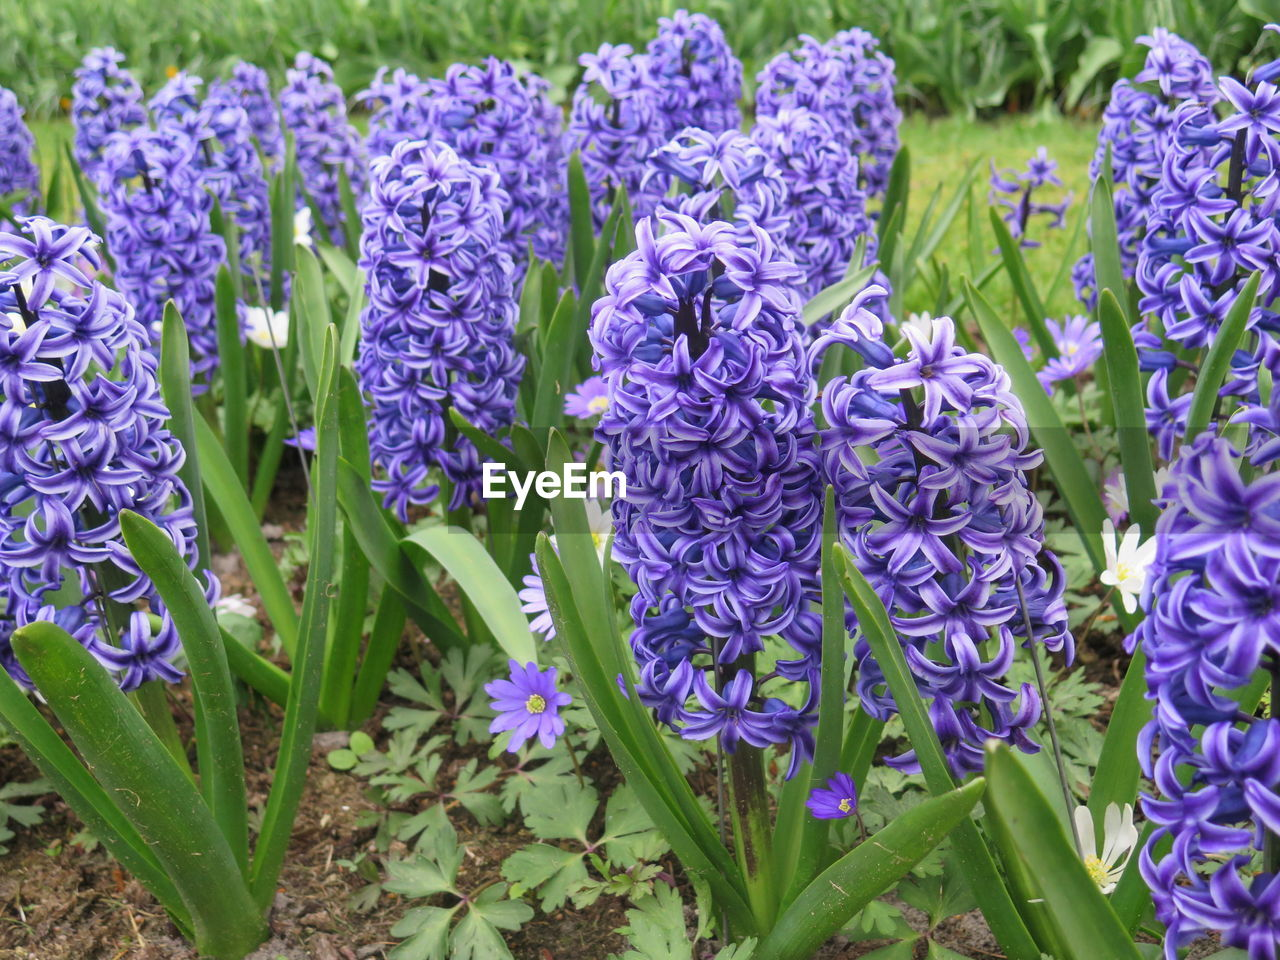 flowering plant, flower, plant, vulnerability, purple, fragility, beauty in nature, growth, freshness, petal, close-up, nature, plant part, leaf, day, inflorescence, flower head, no people, hyacinth, botany, flowerbed